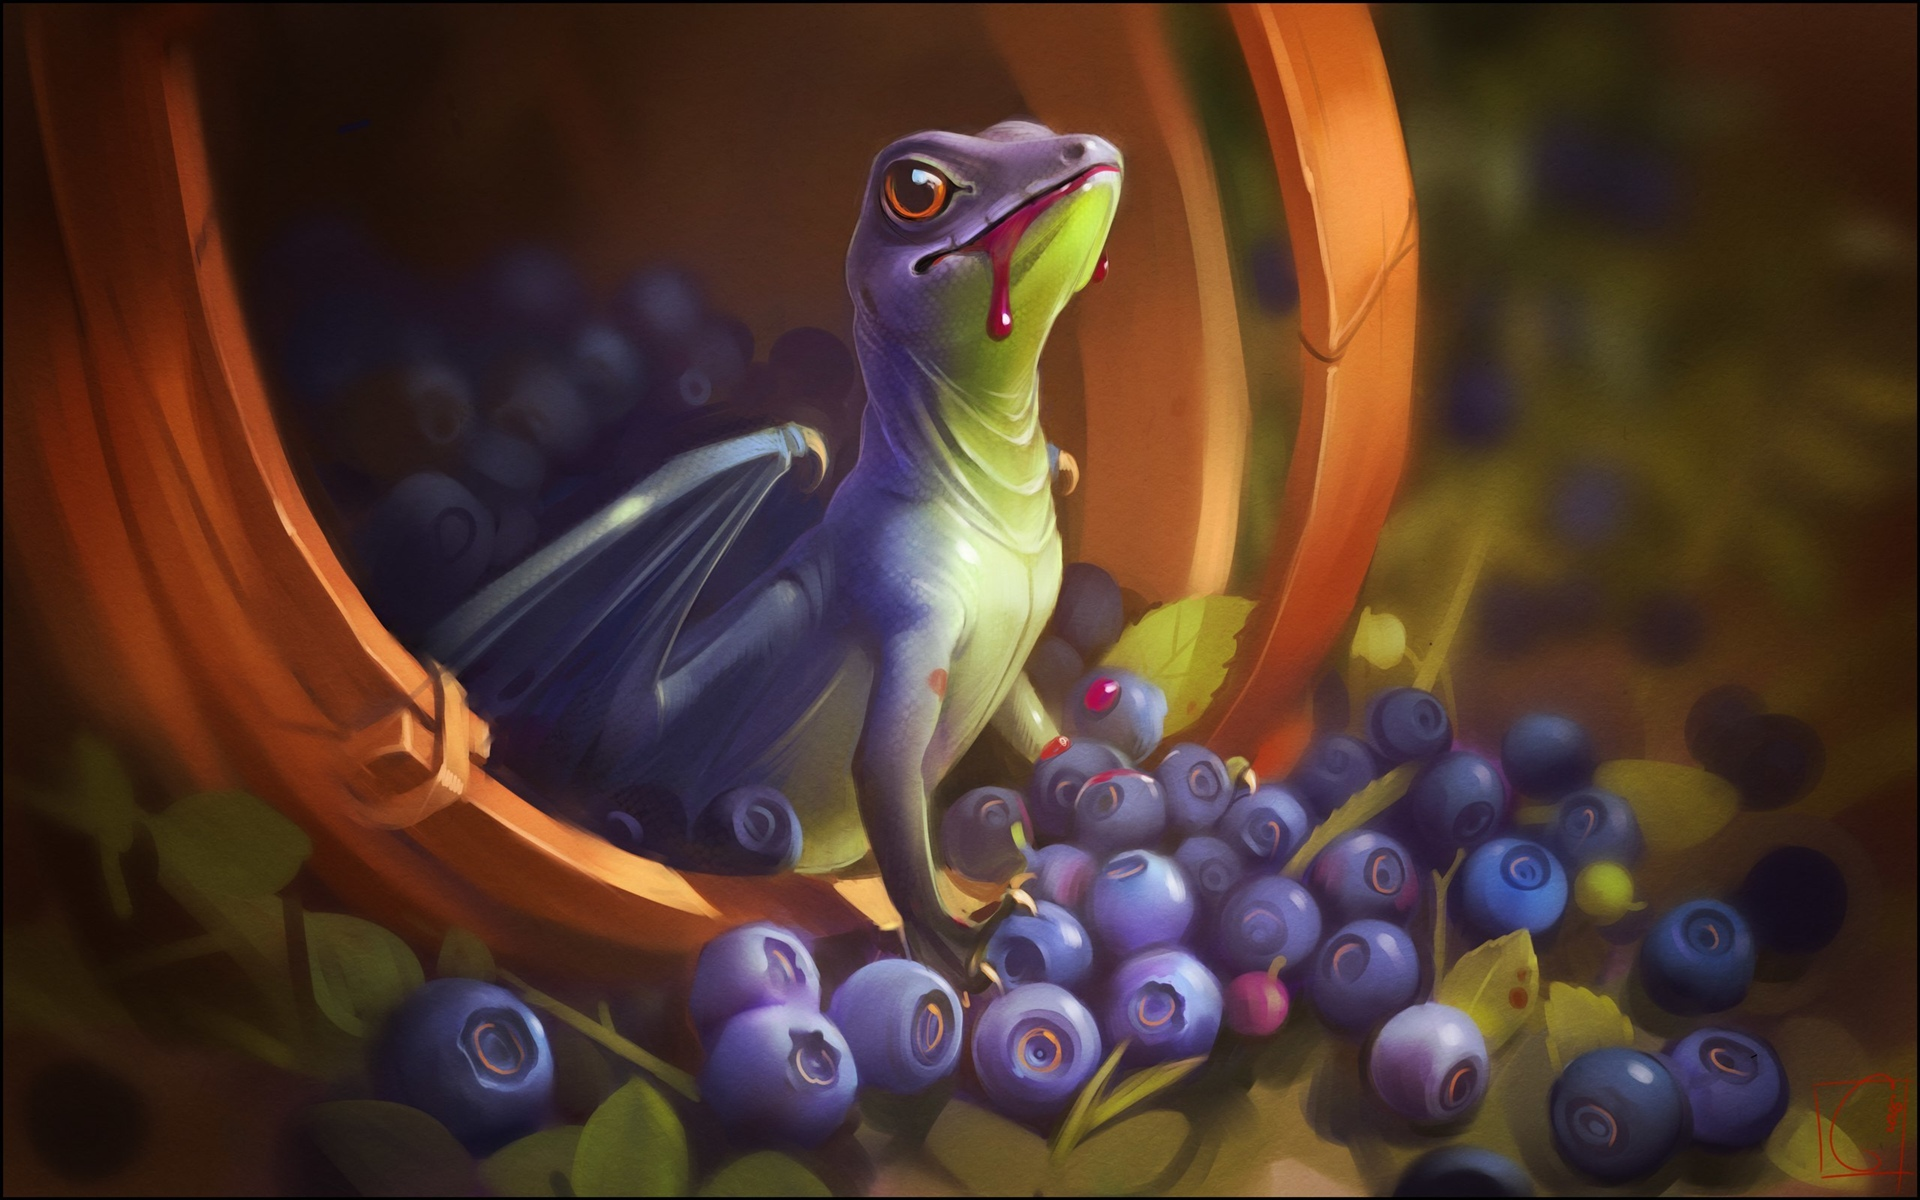 Dragon, wings, blood, blueberry, art picture 1920x1200 wallpaper